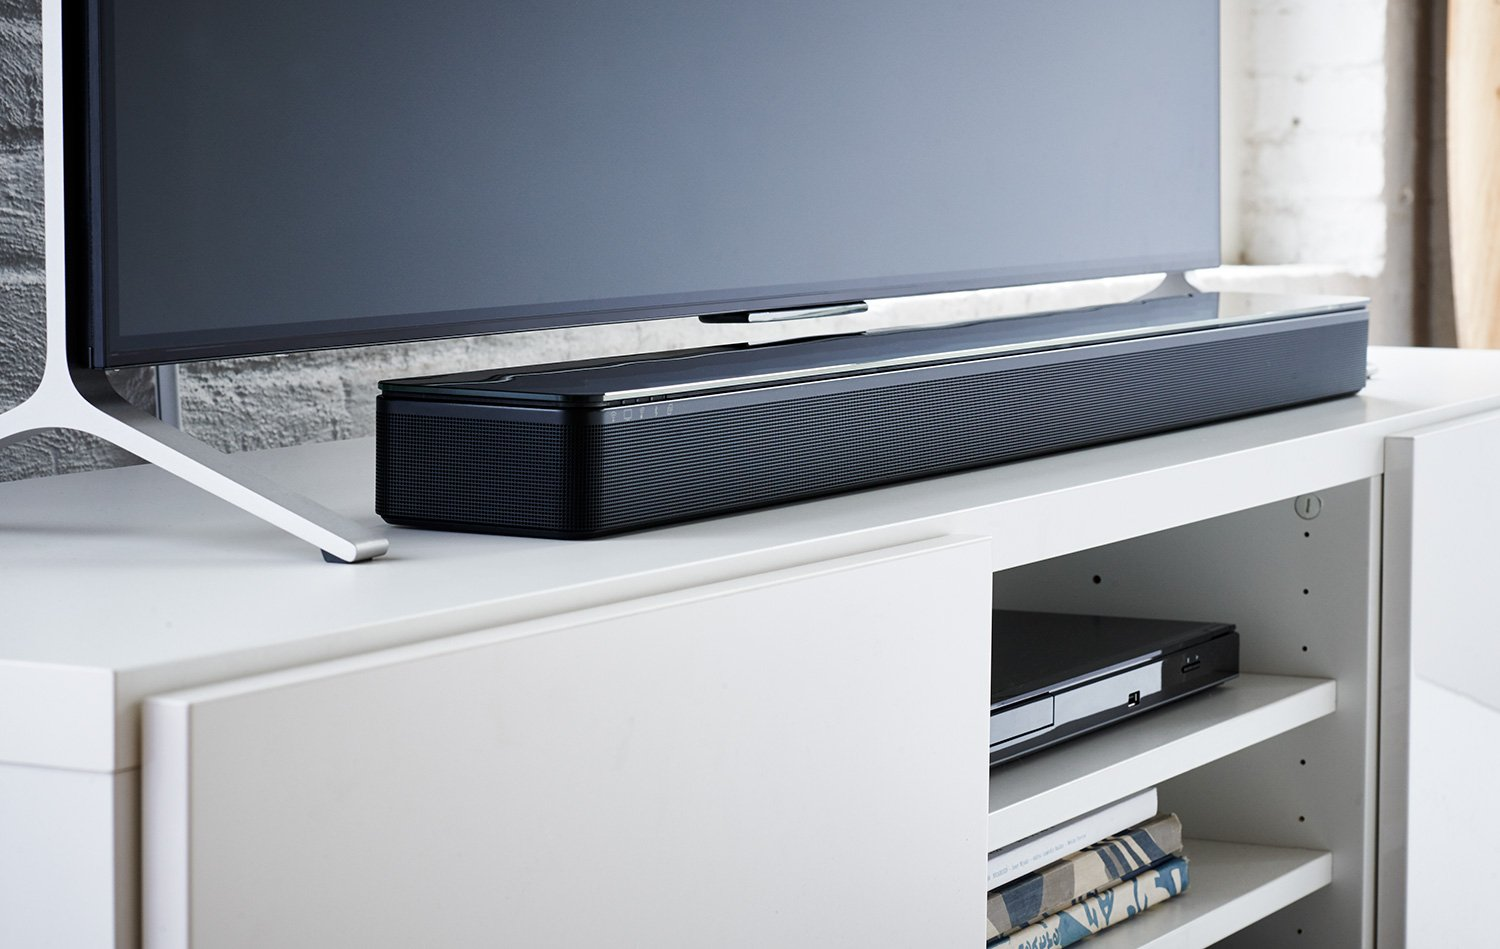 Best Soundbar 2020.Top 10 Best Wireless Sound Bars Buying Guide 2019 2020 On